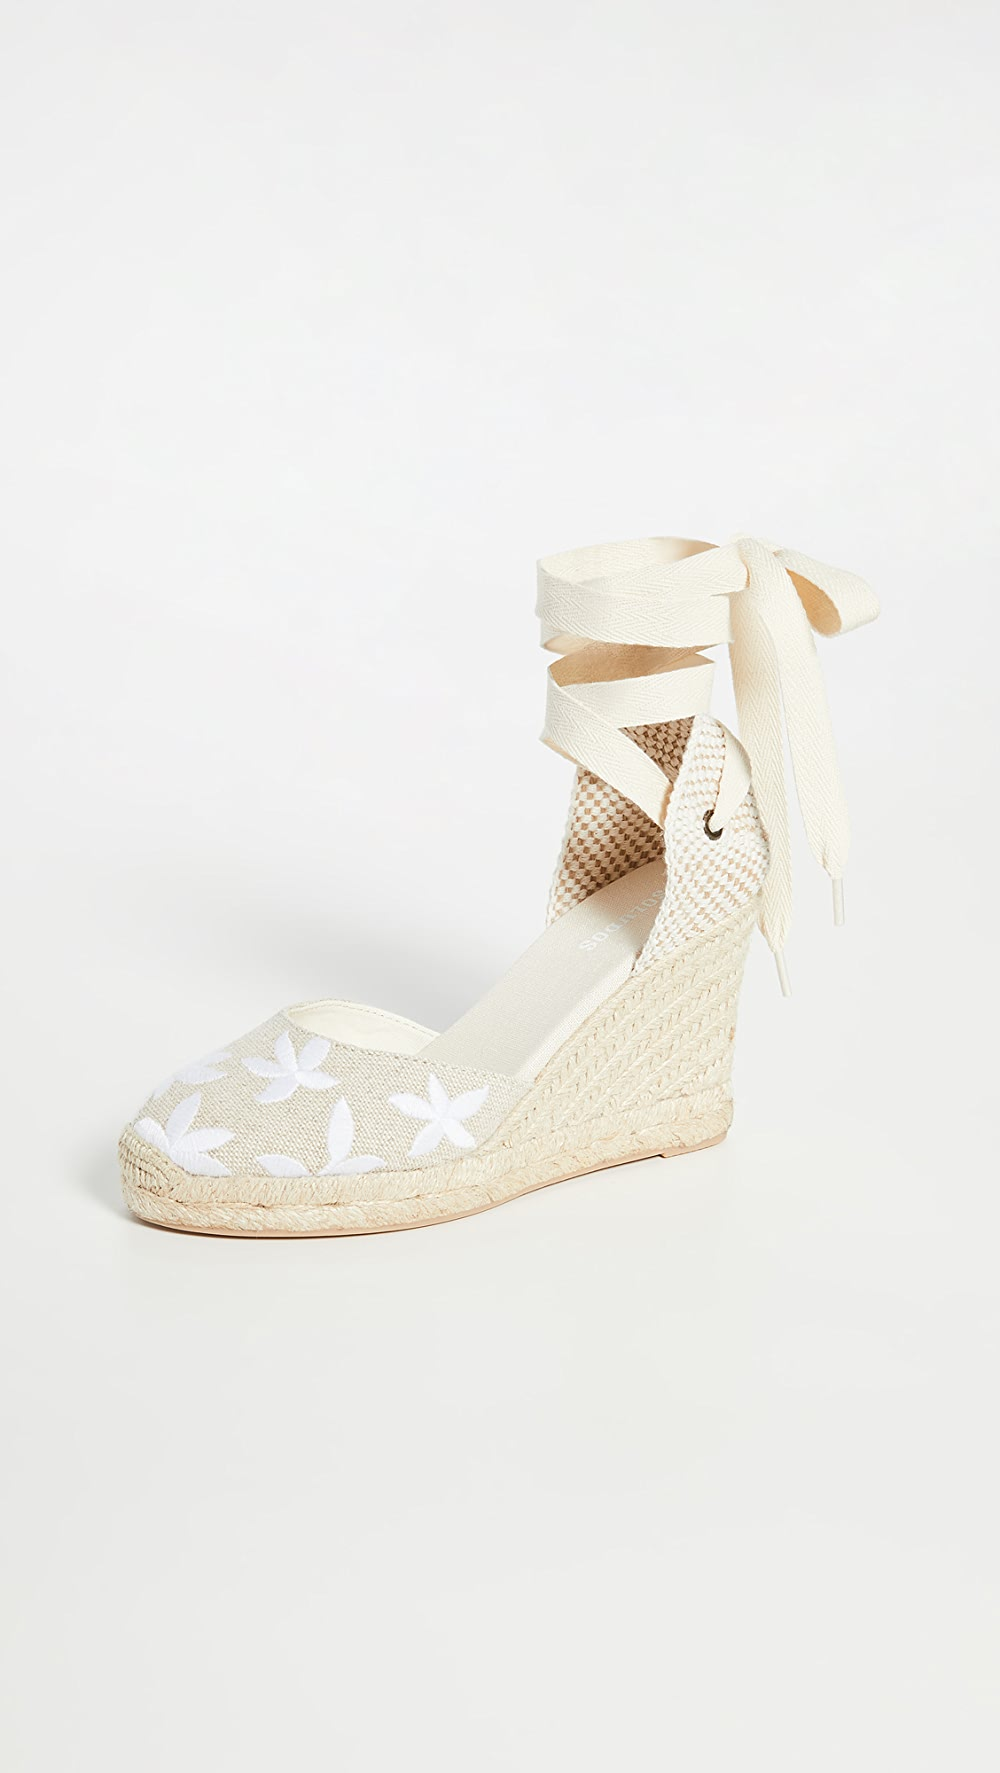 Objective Soludos - Floral Classic Wedge Espadrilles To Adopt Advanced Technology